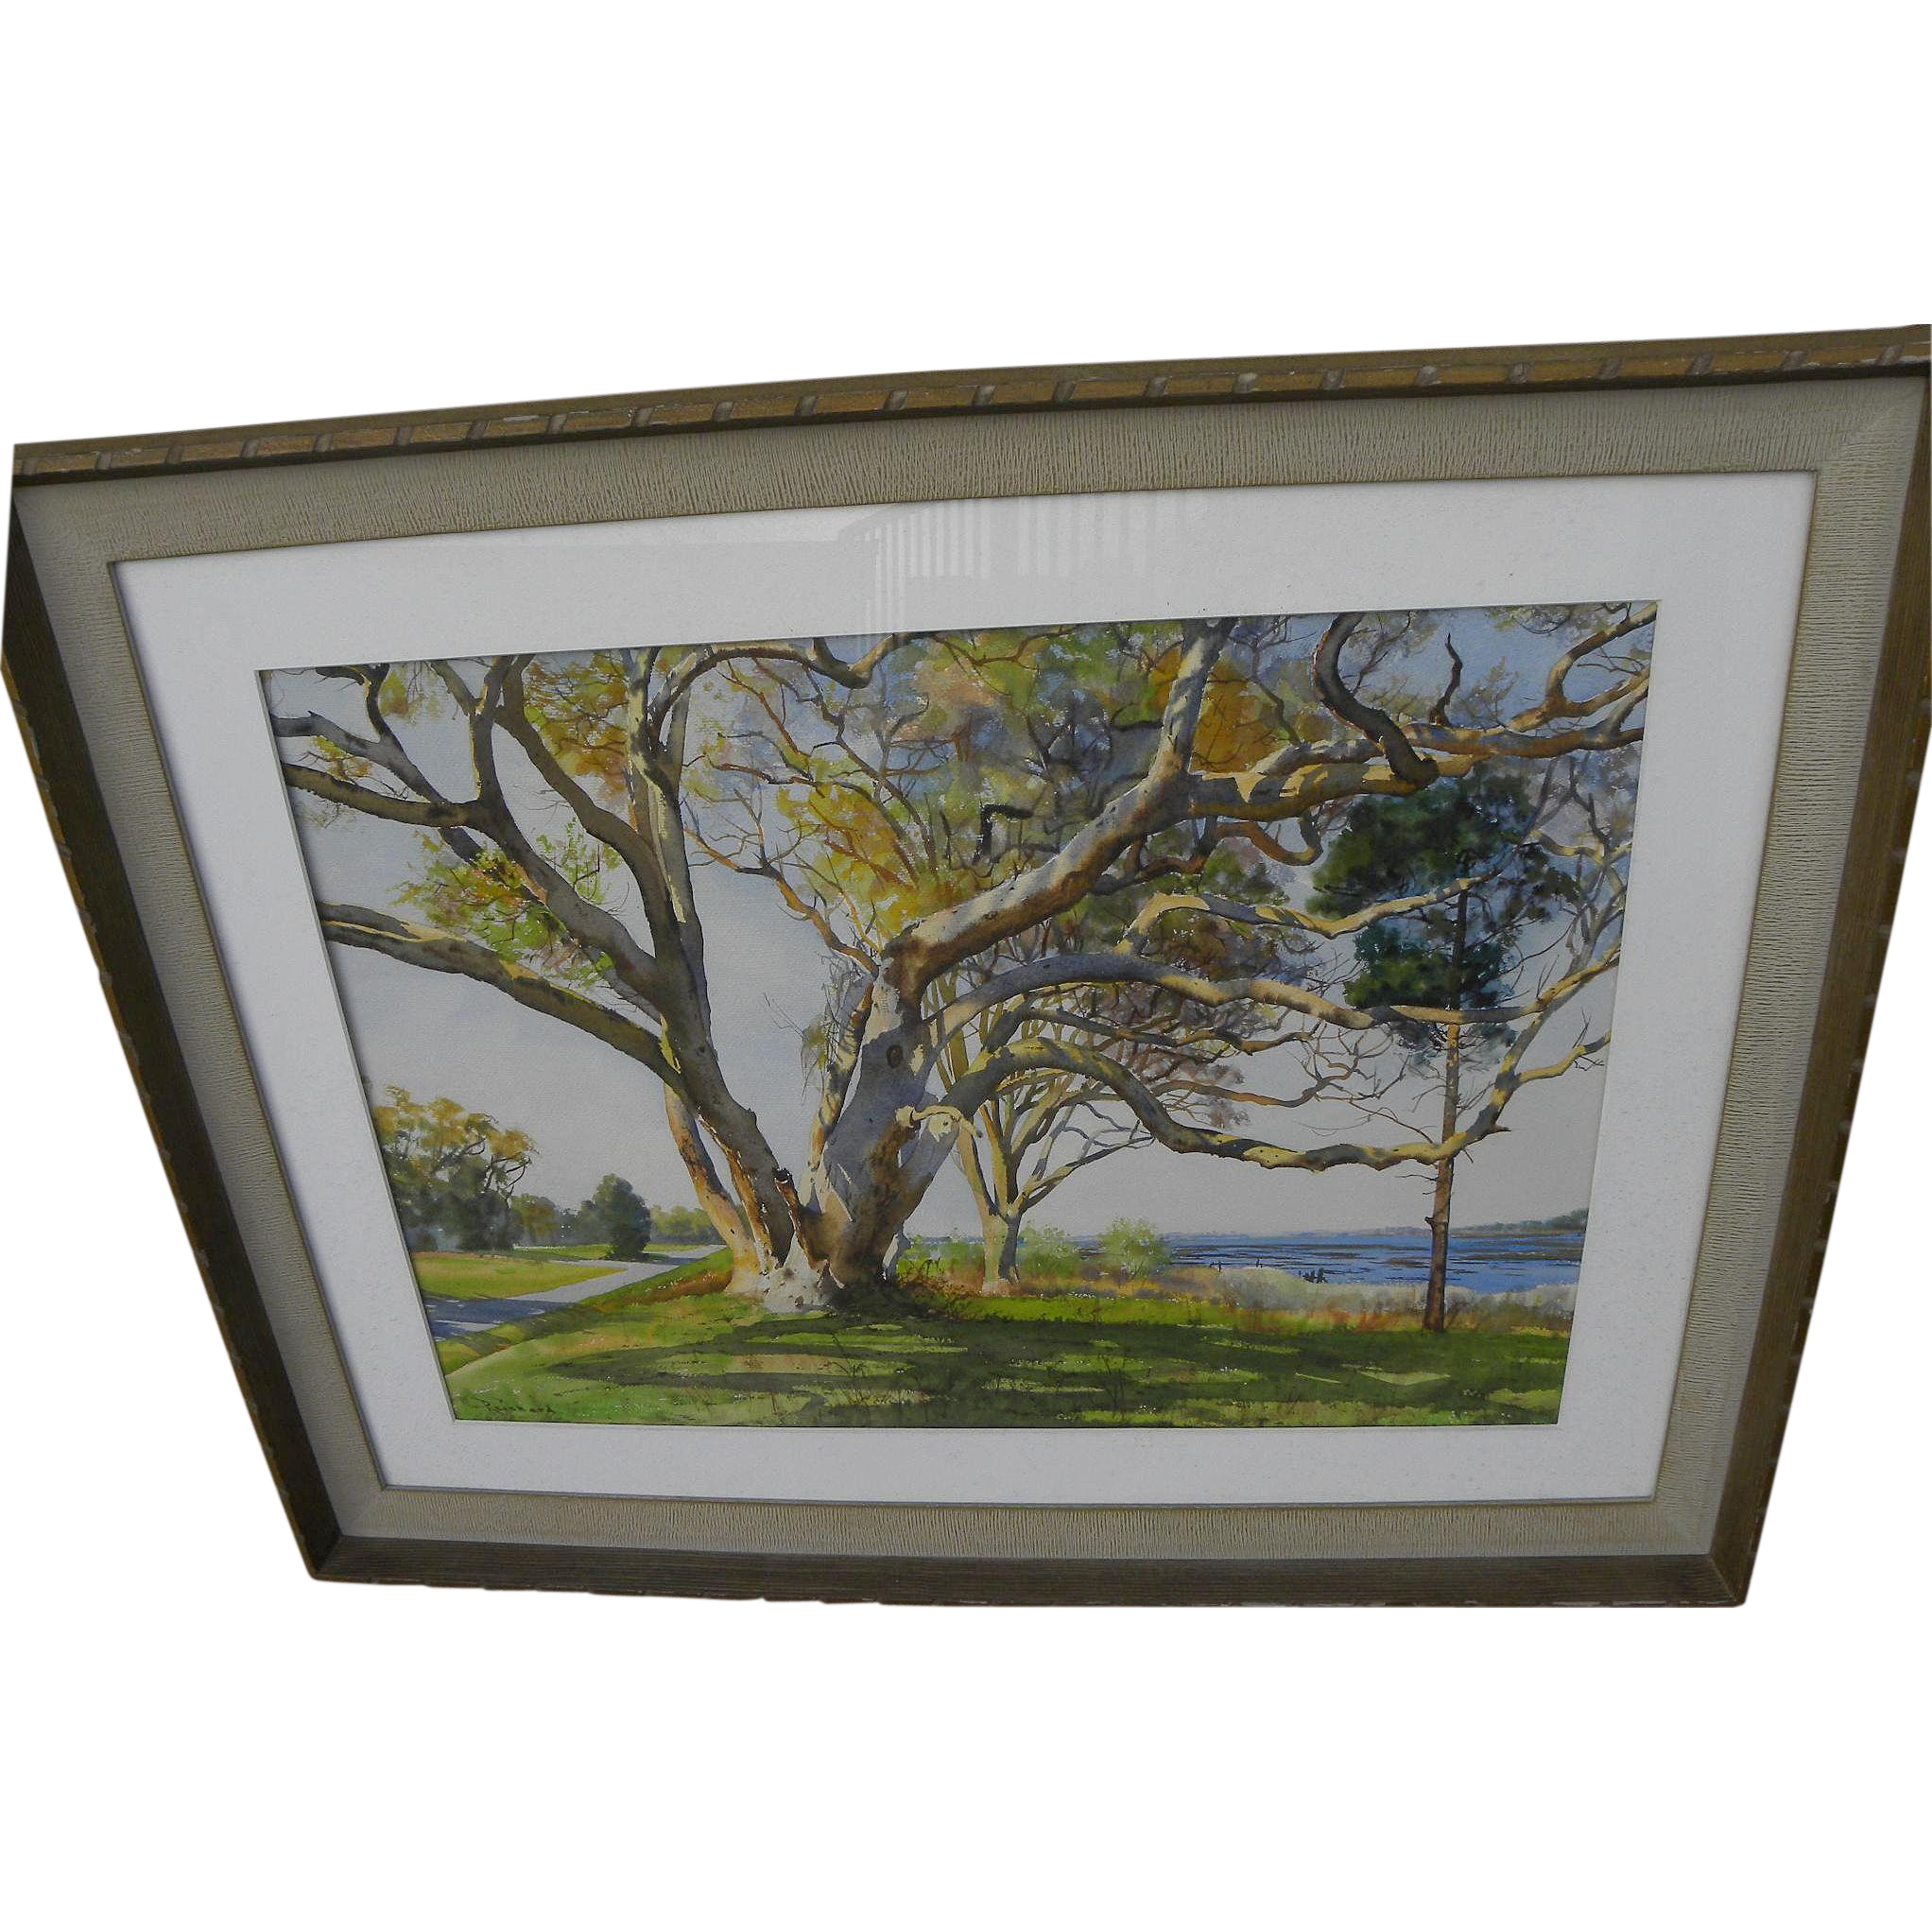 JOEL REICHARD (1909-1986) large watercolor landscape painting by acclaimed Florida artist